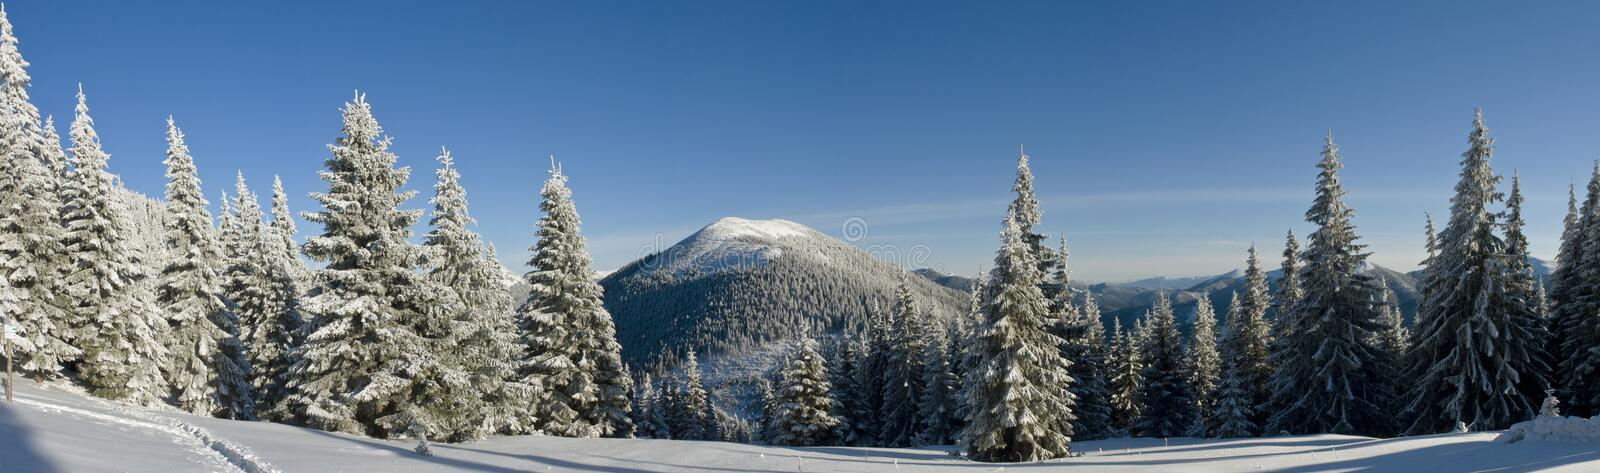 Bright winter day in the mountains stock photography